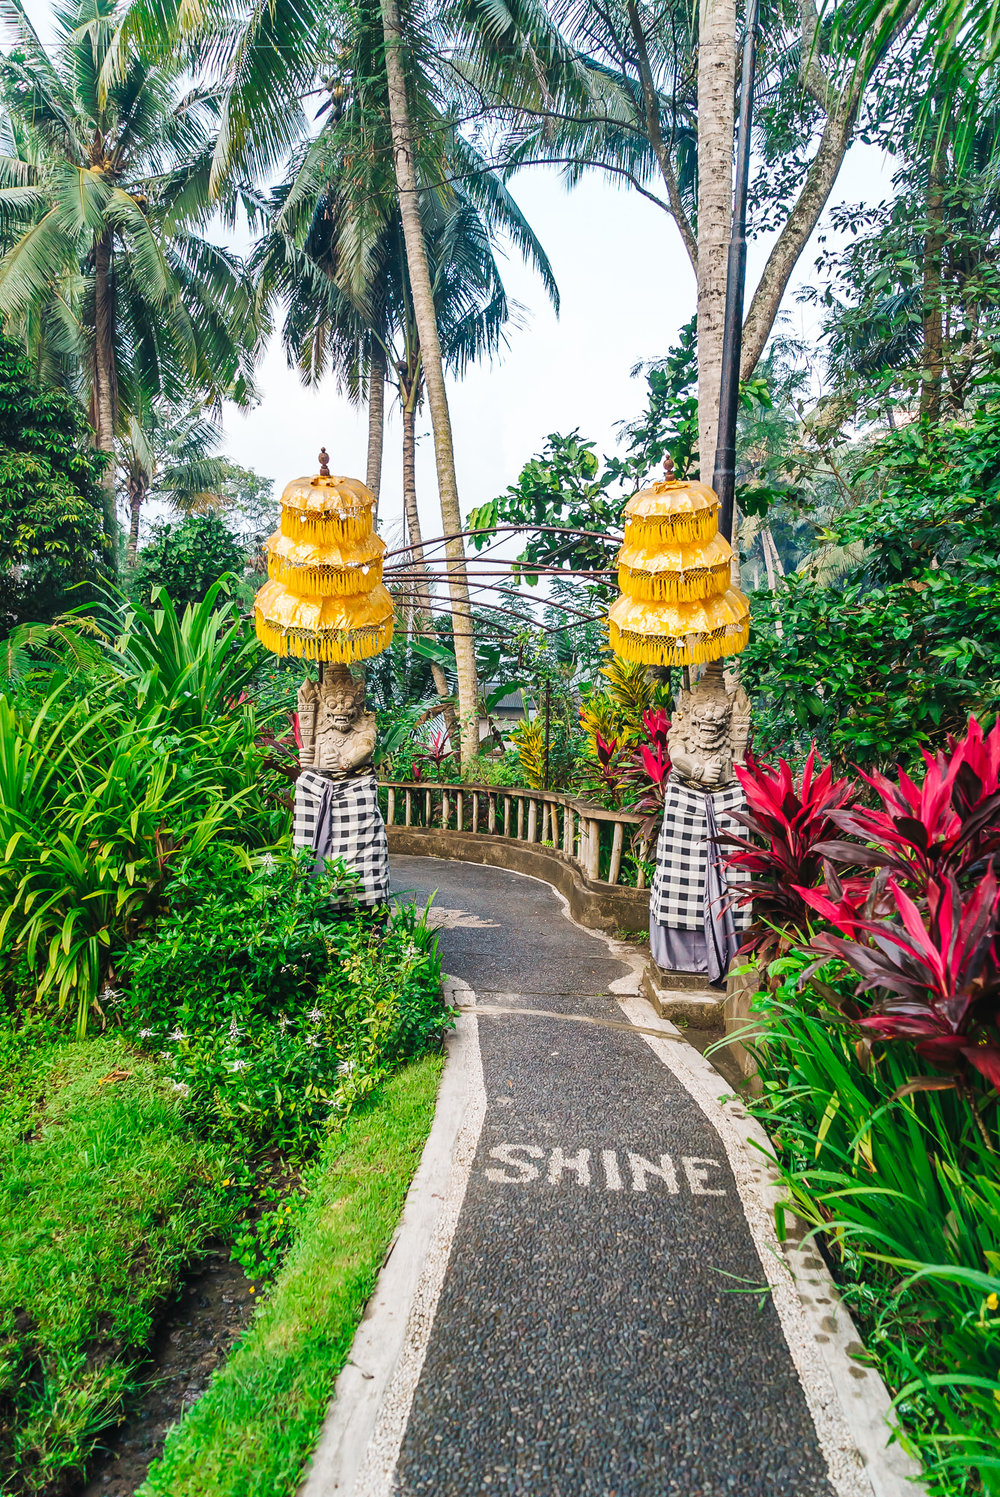 Uplifting words engraved on the pathway to Soulshine Bali